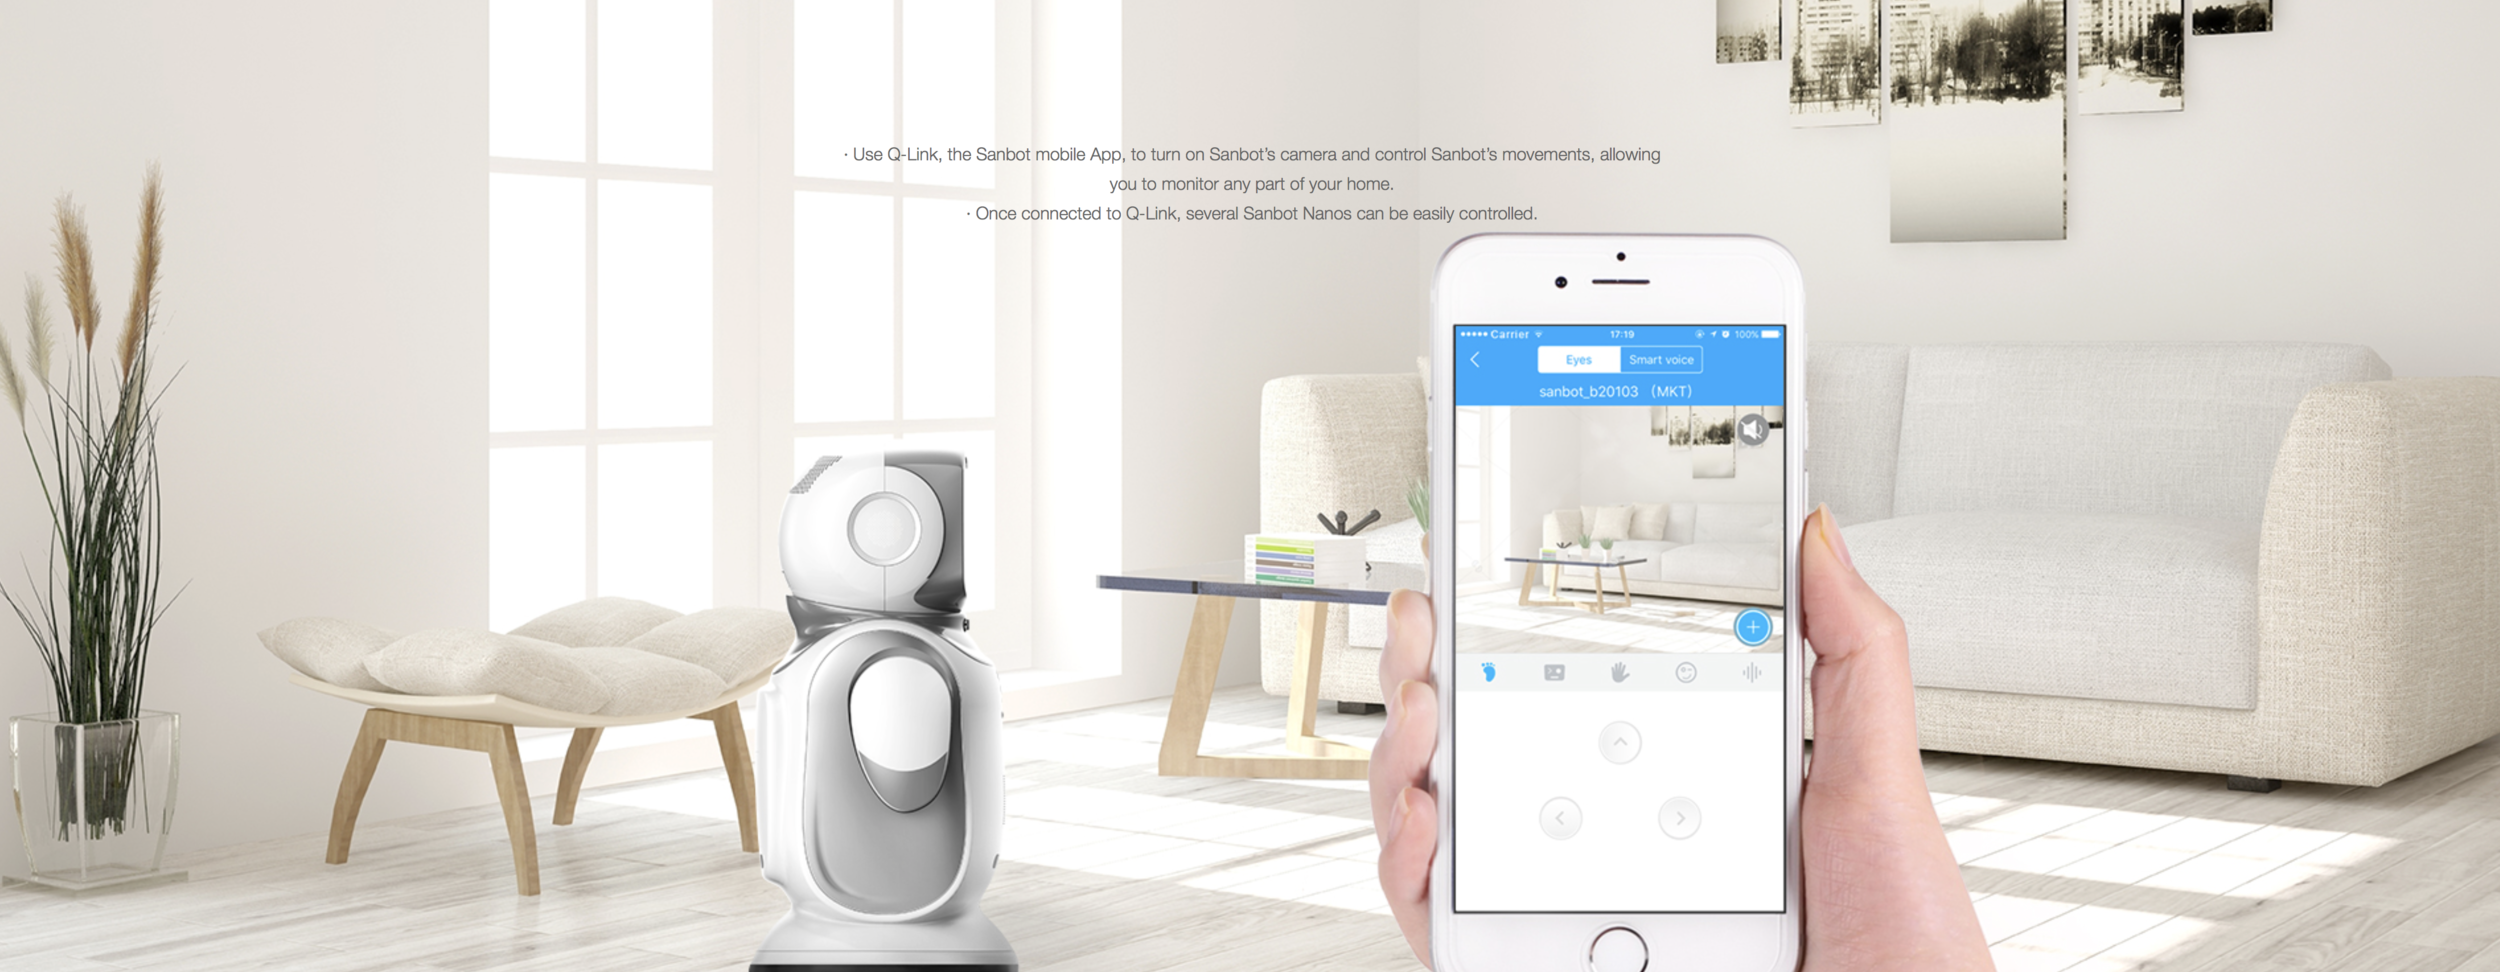 Sanbot Nano Connects To The Qlink App